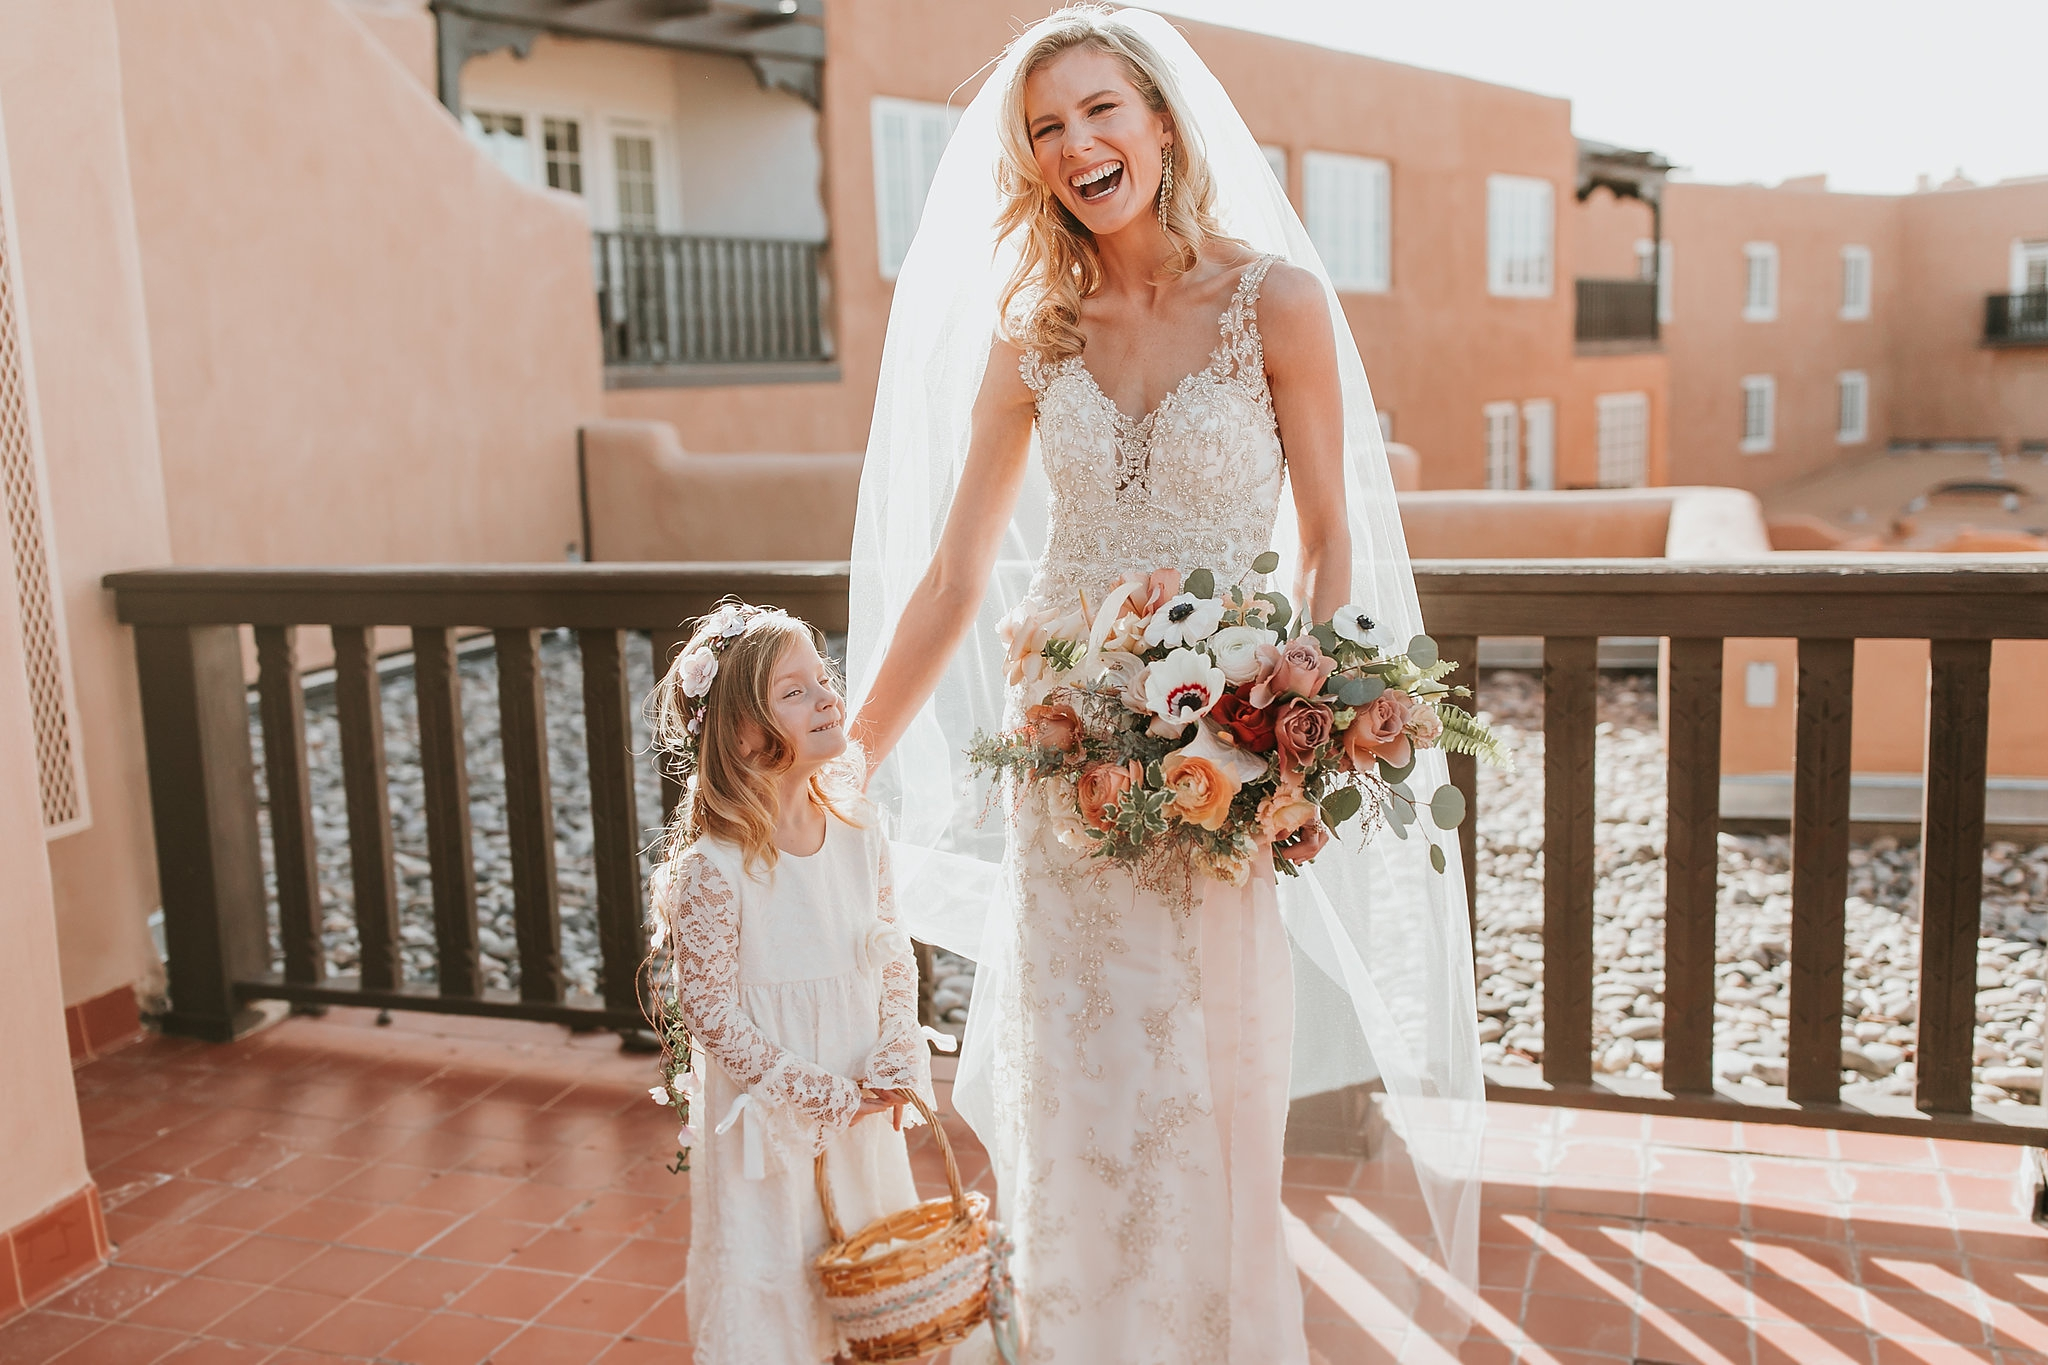 Alicia+lucia+photography+-+albuquerque+wedding+photographer+-+santa+fe+wedding+photography+-+new+mexico+wedding+photographer+-+new+mexico+wedding+-+flower+girl+-+wedding+flower+girl_0064.jpg